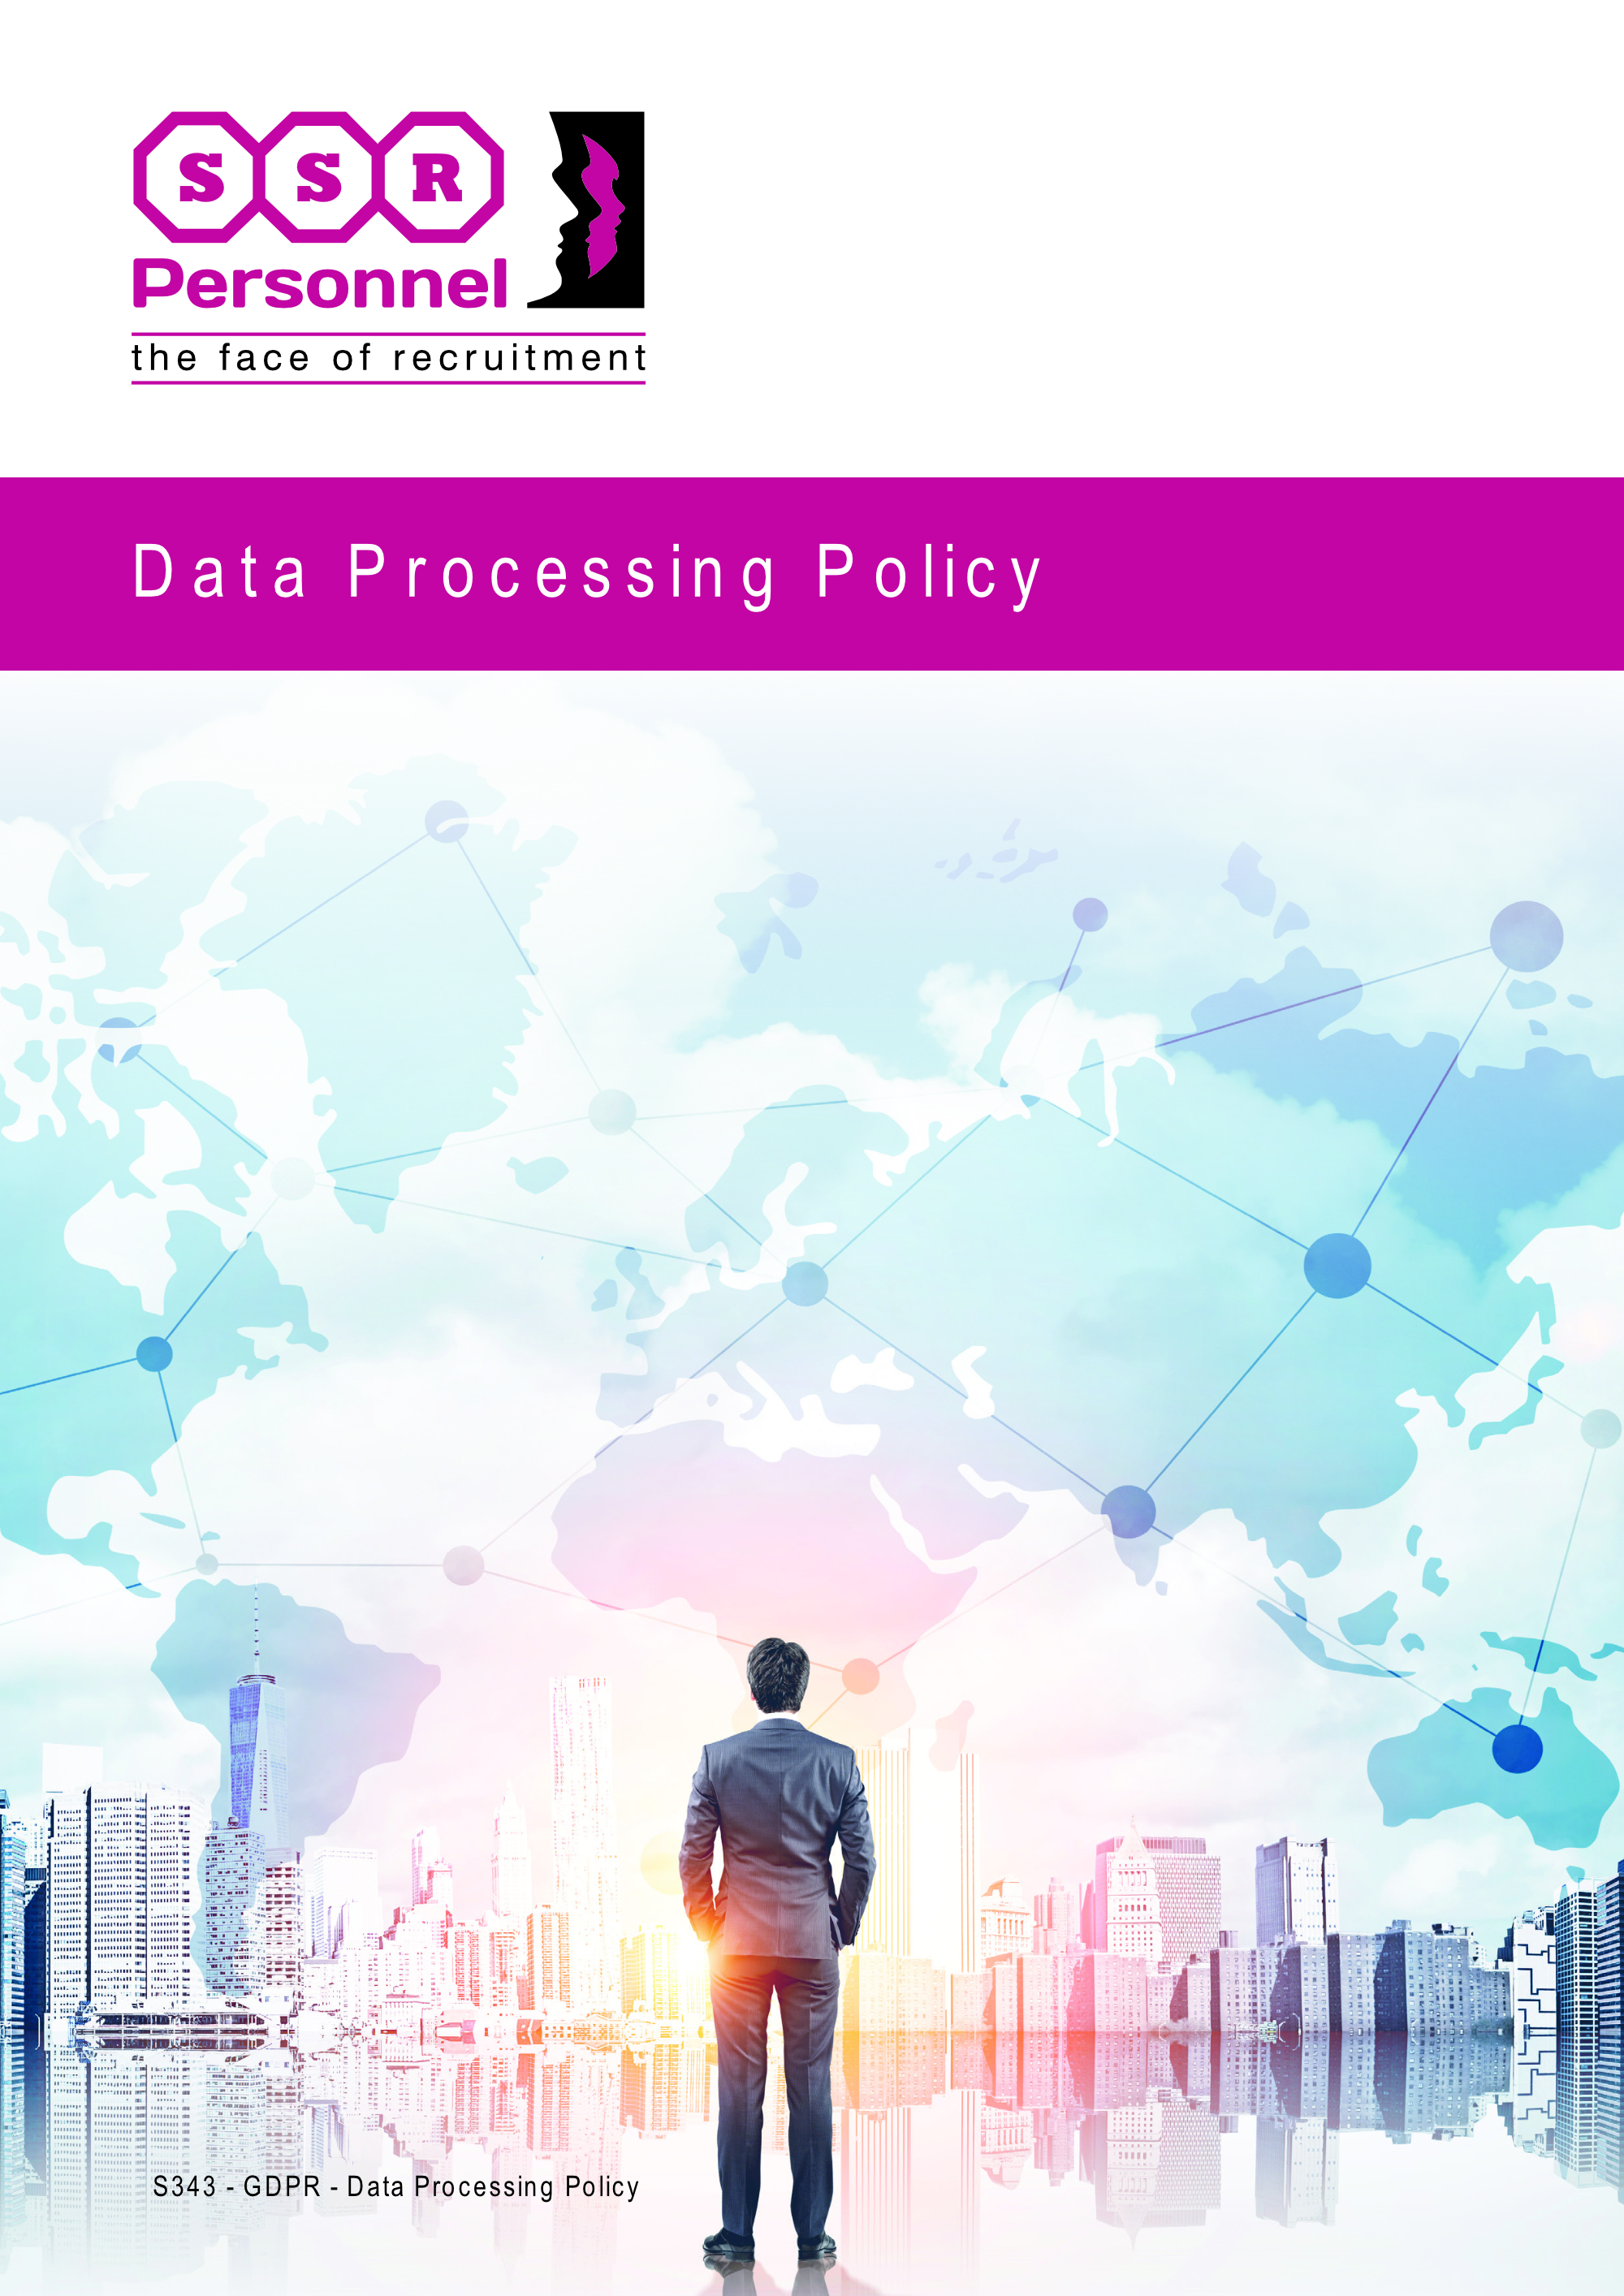 S343 - GDPR - Data Processing Policy.jpg